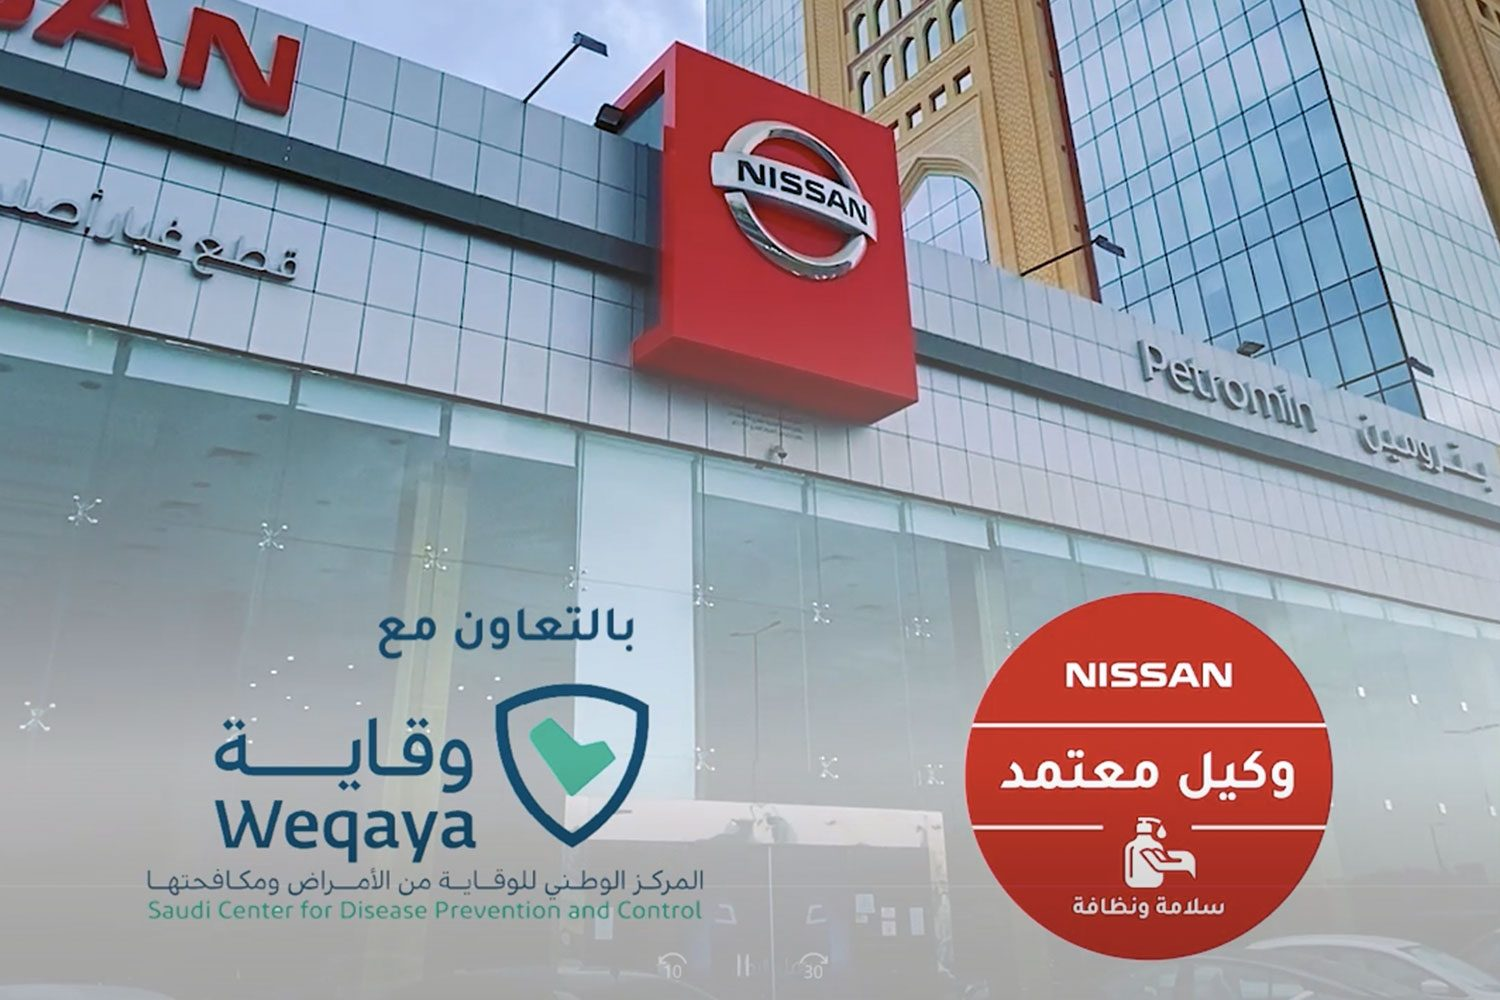 Nissan KSA Launches Safe and Clean Program with Weqaya